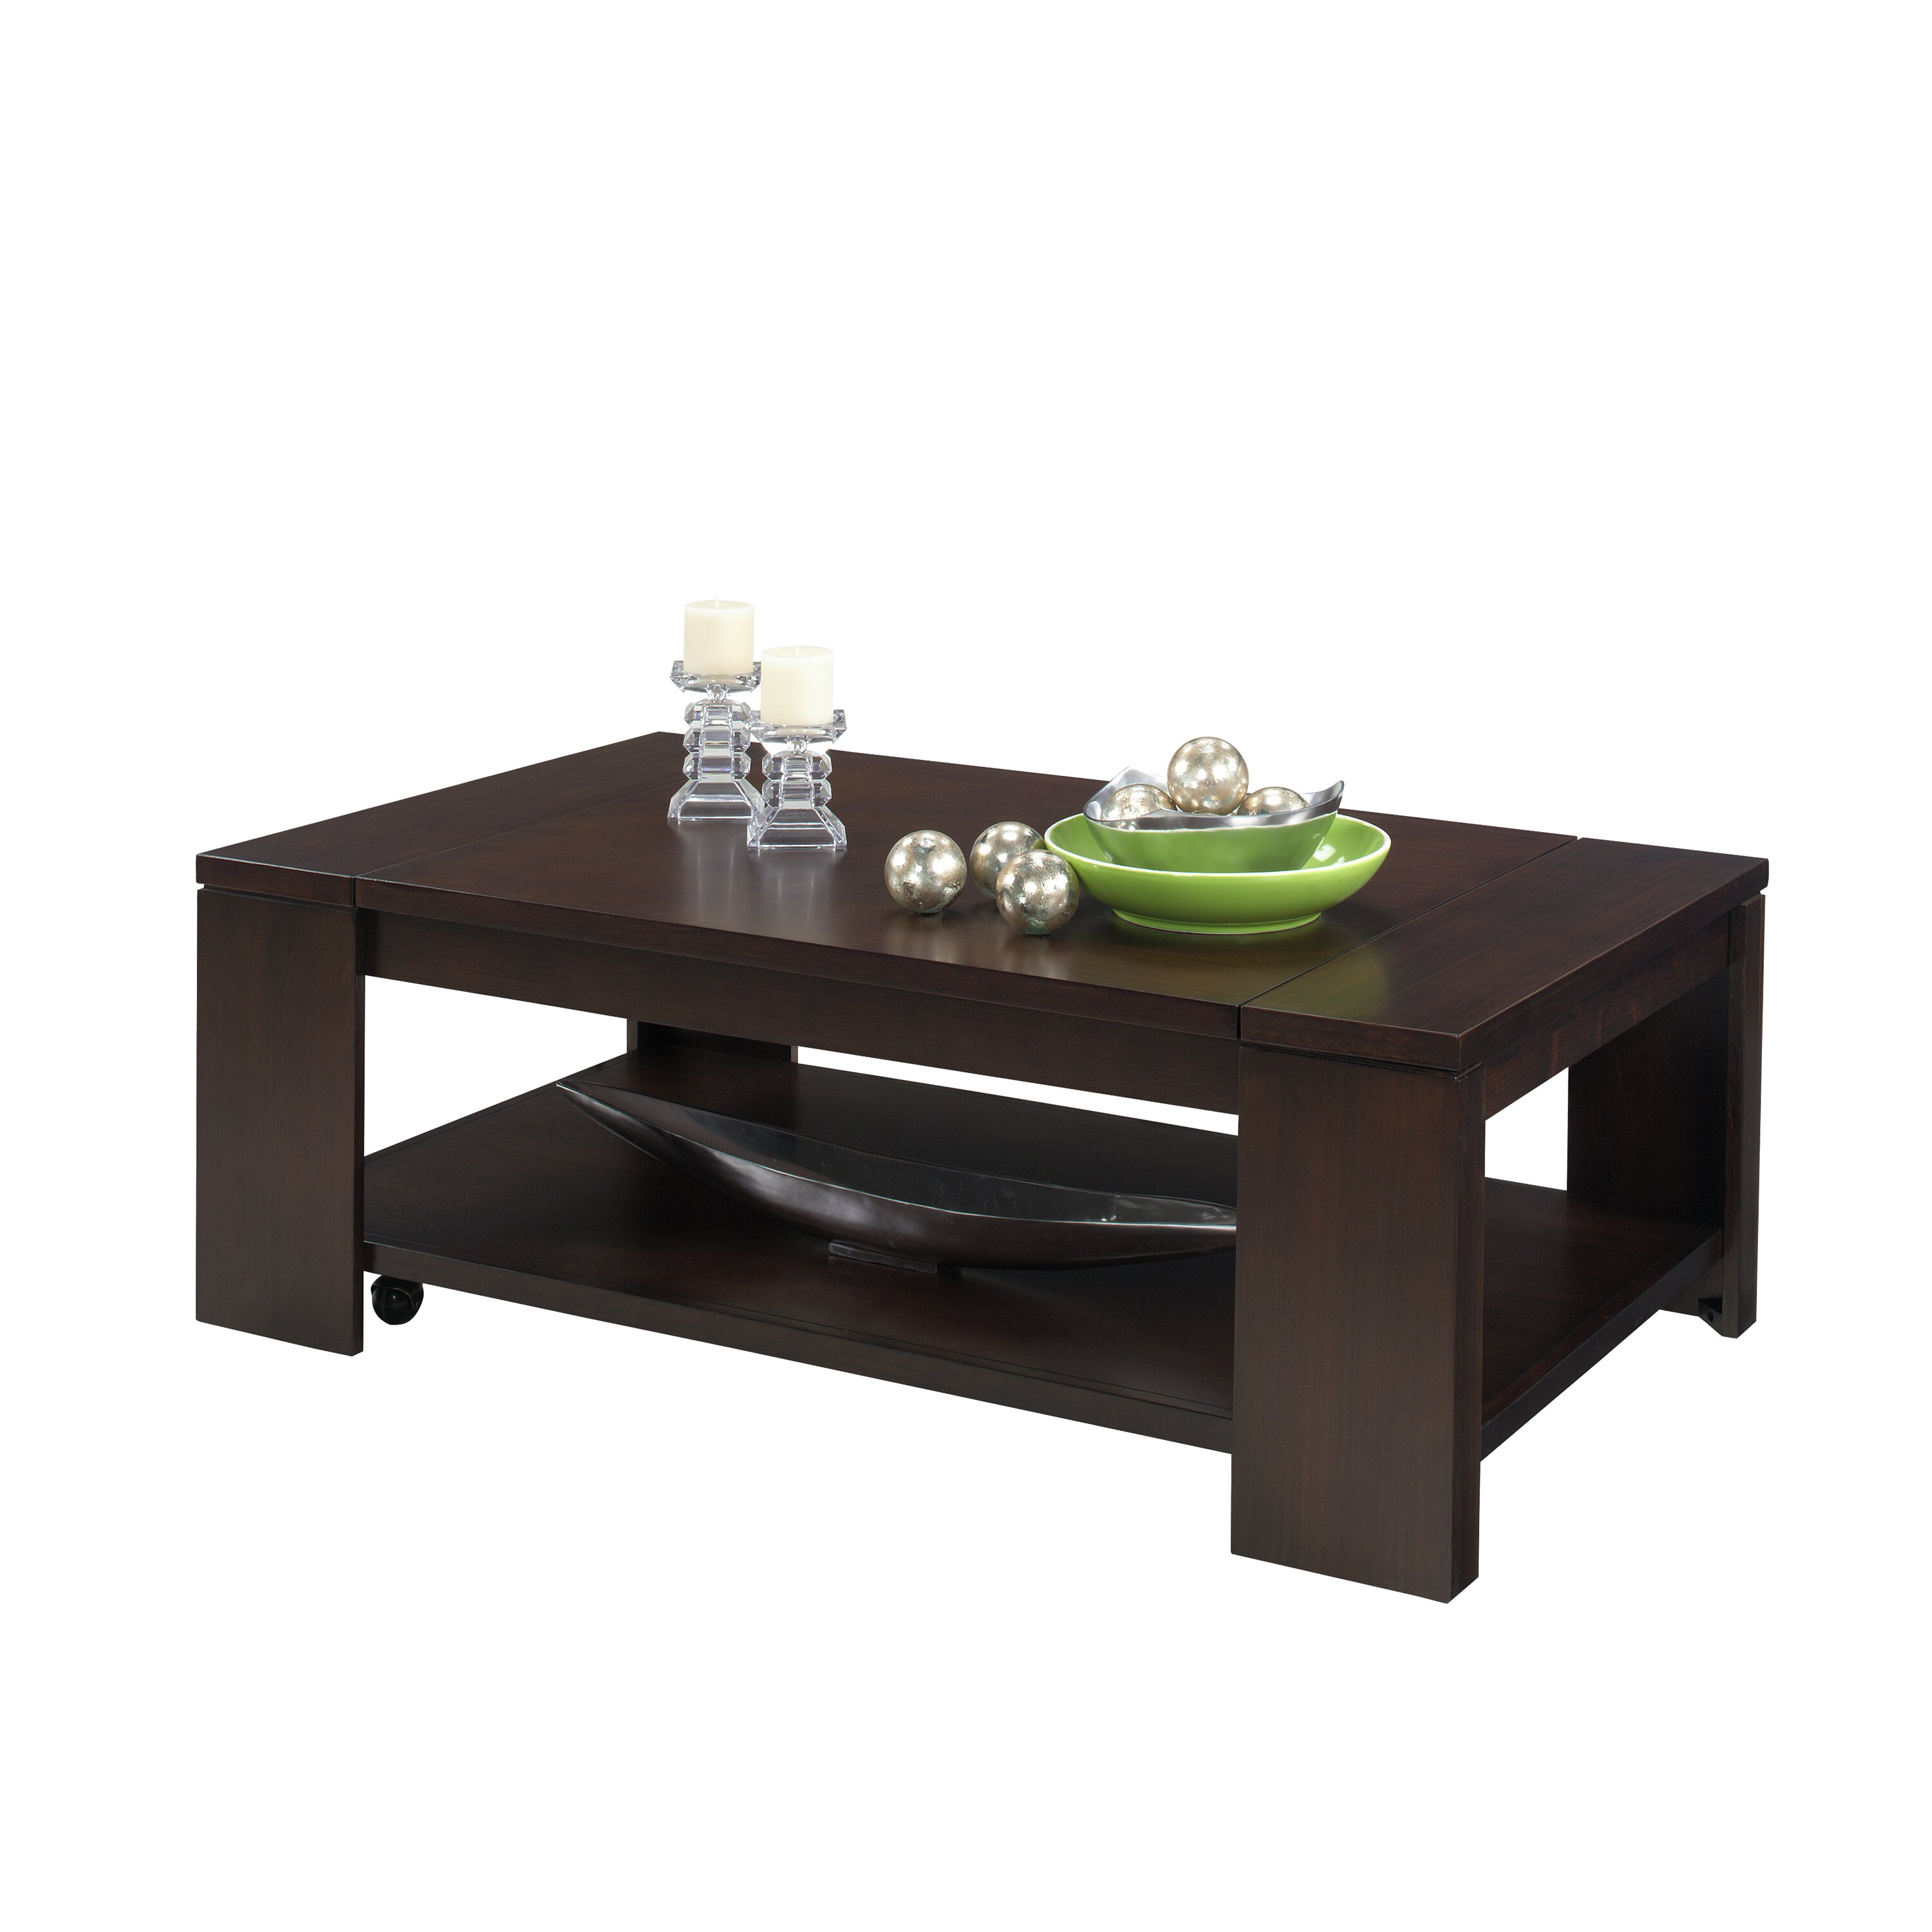 Progressive Furniture Waverly Coffee Table With Lift Top